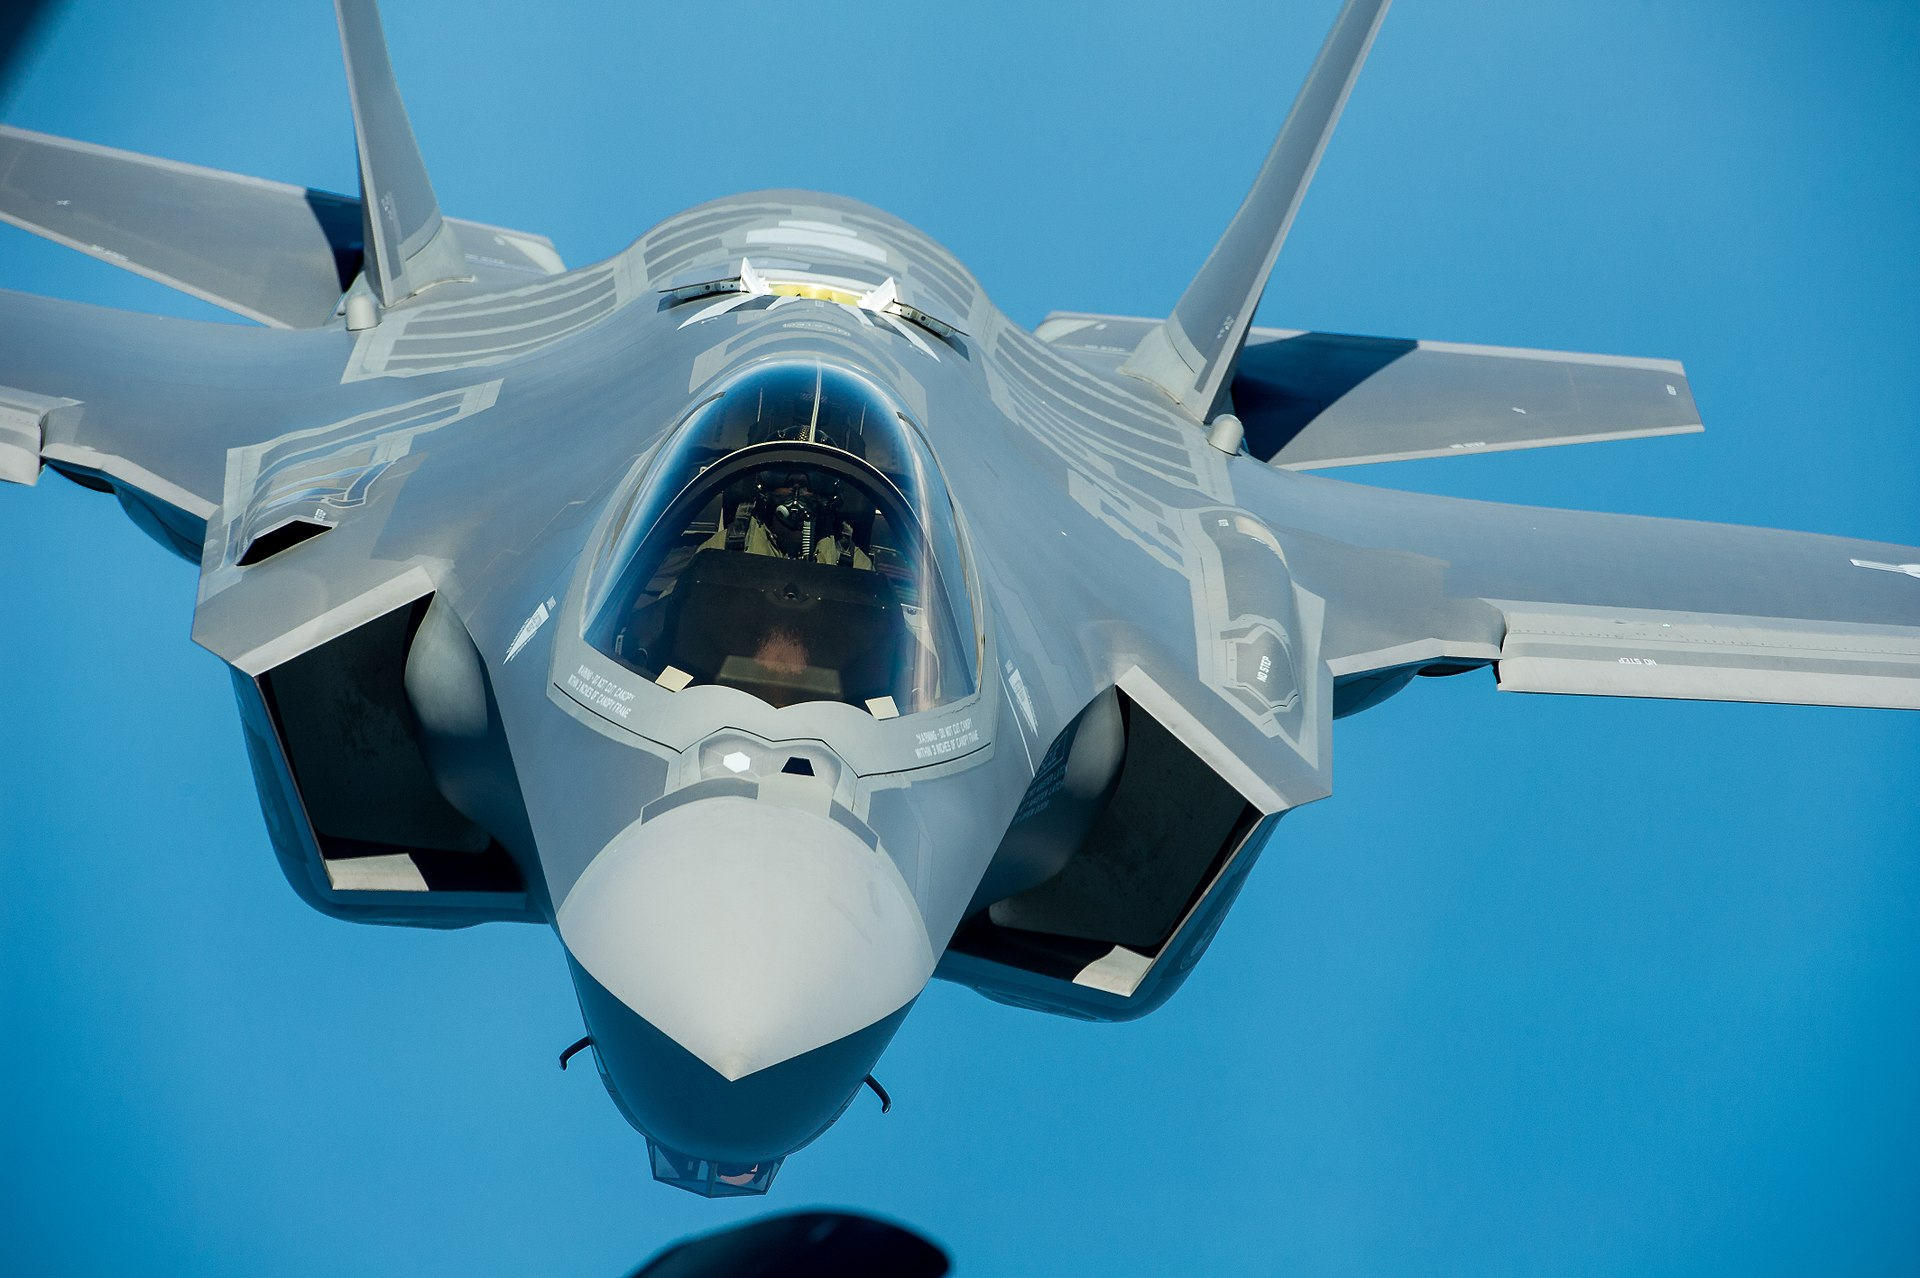 Pentagon And Lockheed Martin Reach Agreement Reducing F-35A Cost By 12.8 Percent